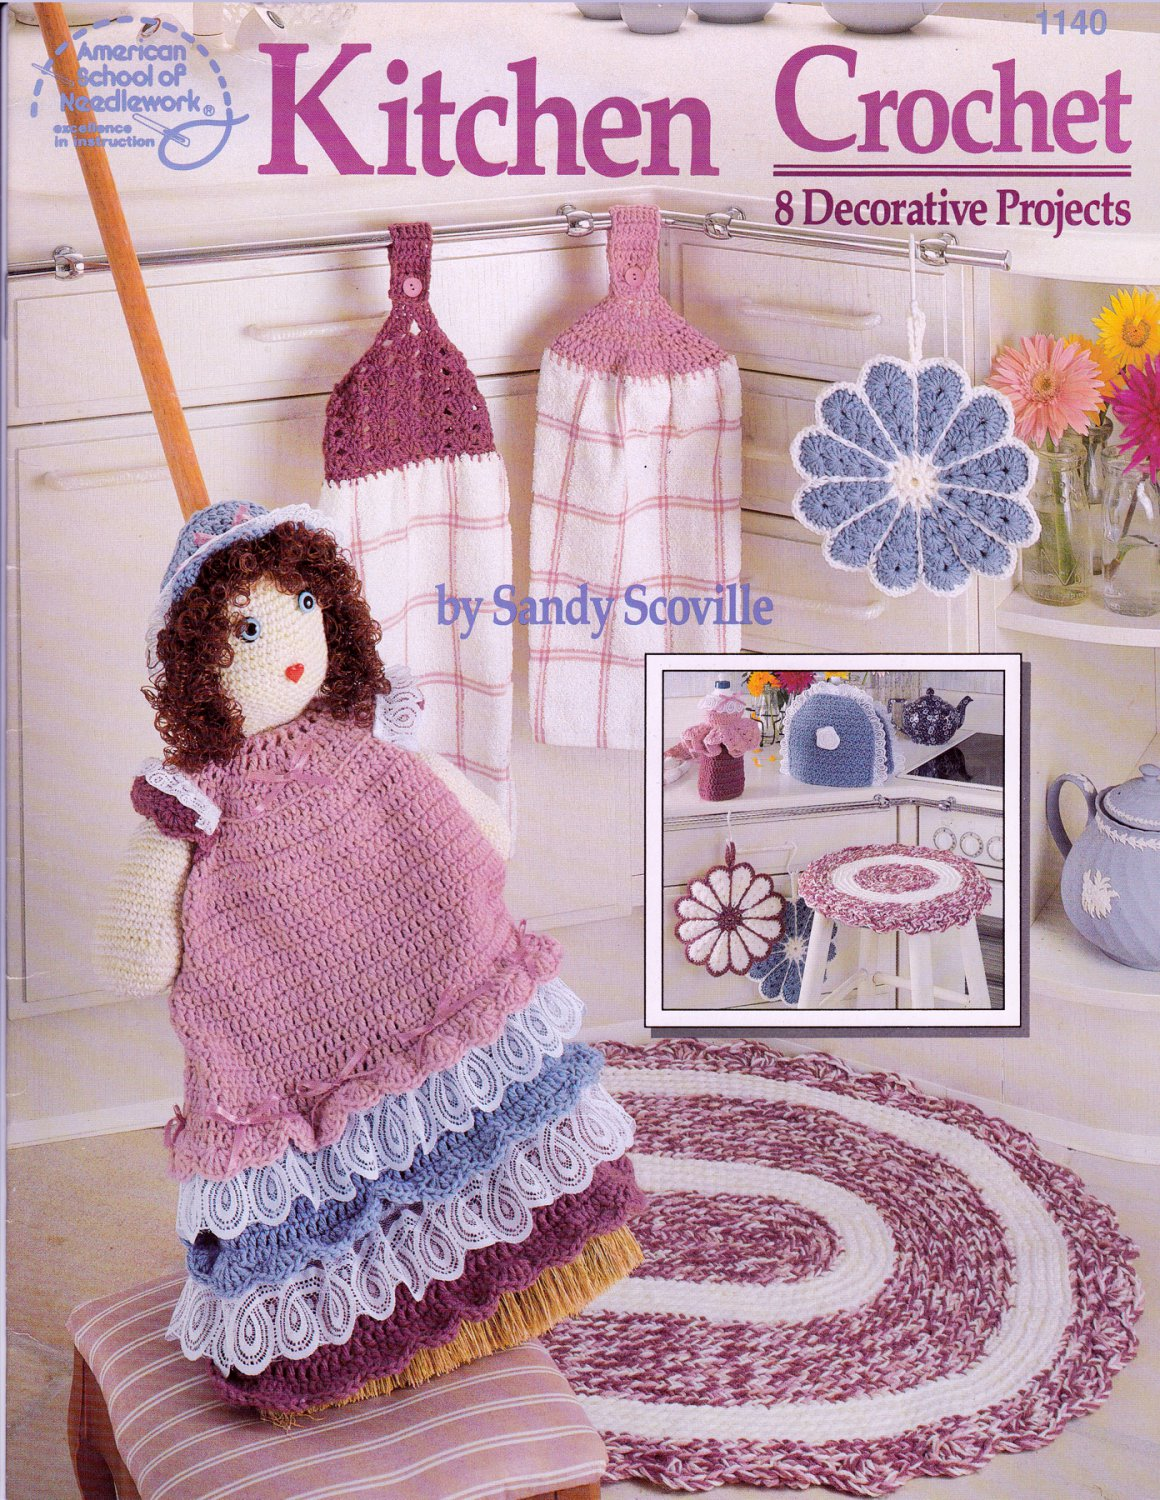 KITCHEN CROCHET 8 DECOR PROJECTS TEA COZY POTHOLDER BROOM COVER DOLL TOPPERS NEW